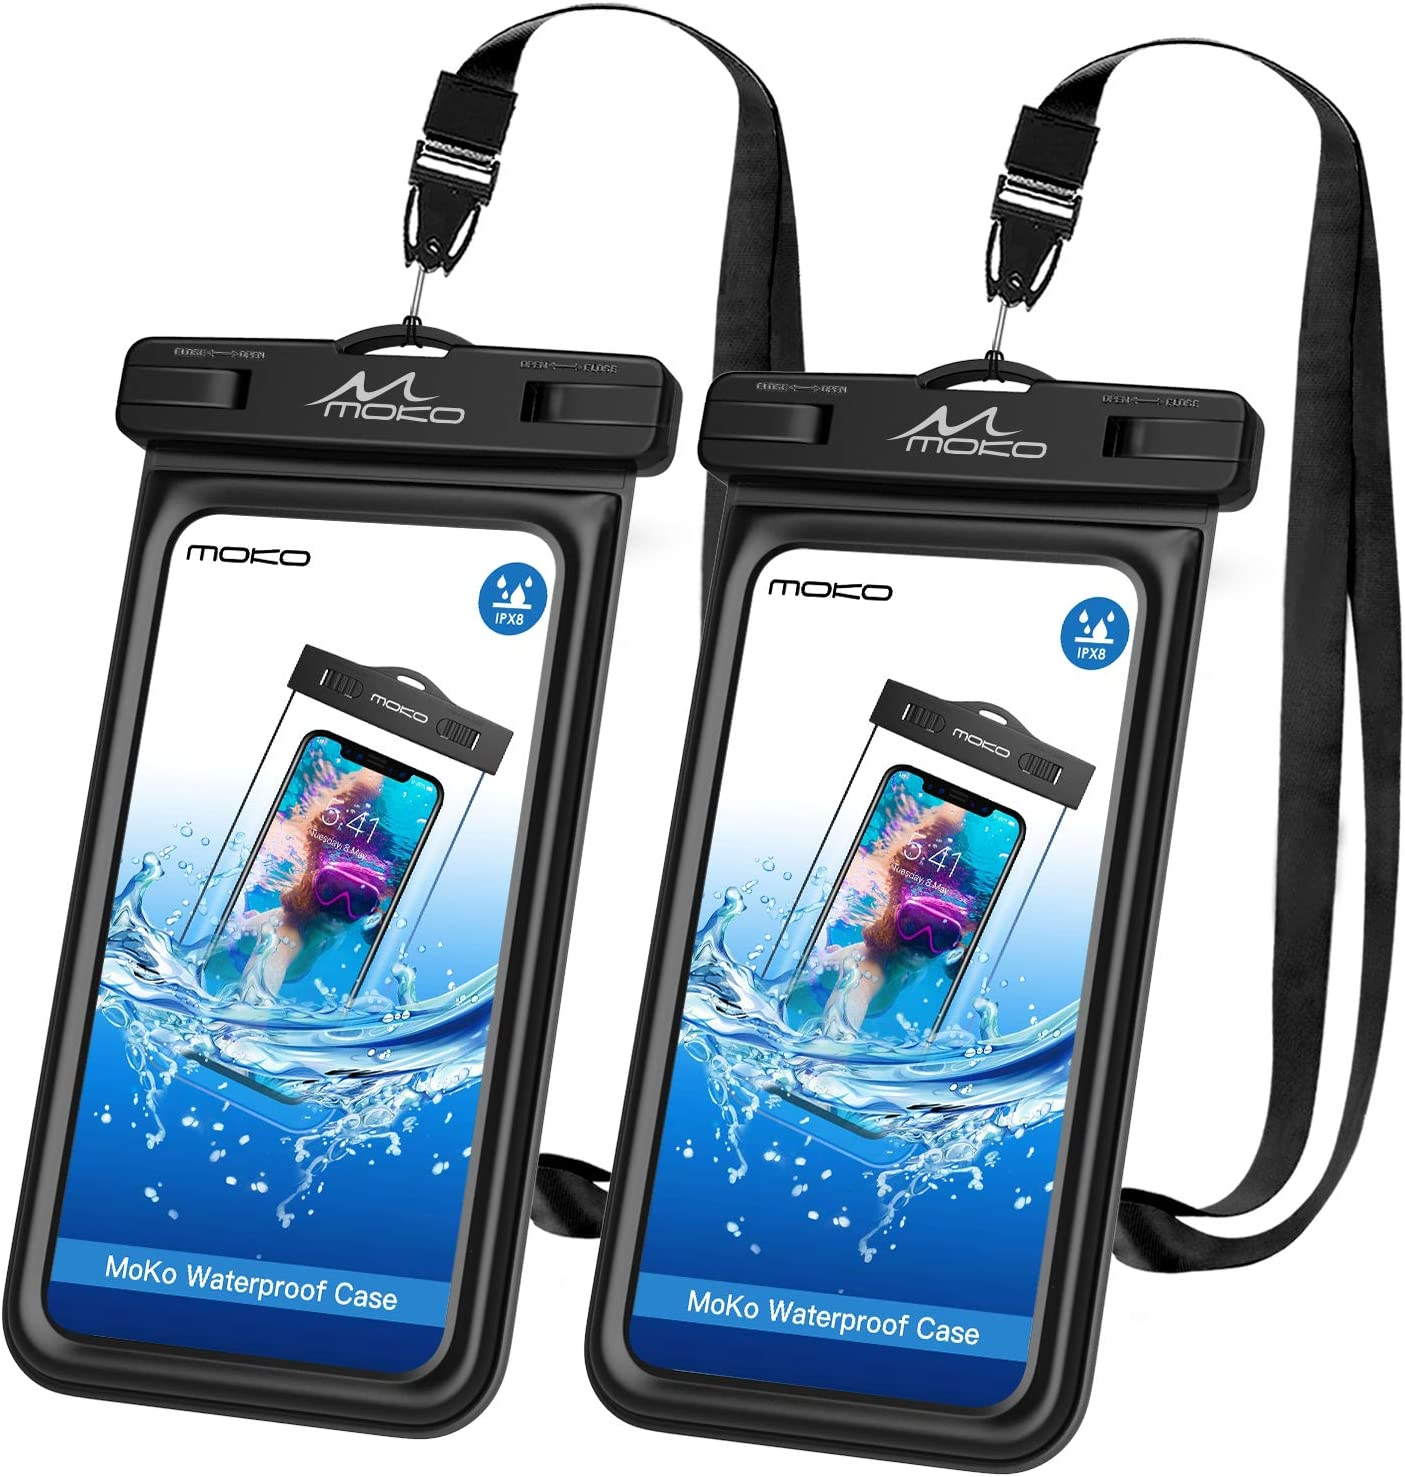 MoKo Floating Waterproof Phone Pouch Holder [2 Pack], Floatable Phone Case Dry Bag with Lanyard Sponge Compatible with iPhone 13/13 Pro Max/iPhone 12/12 Pro Max/11 Pro/Xr/Xs Max, Galaxy S21/S20/S10/S9